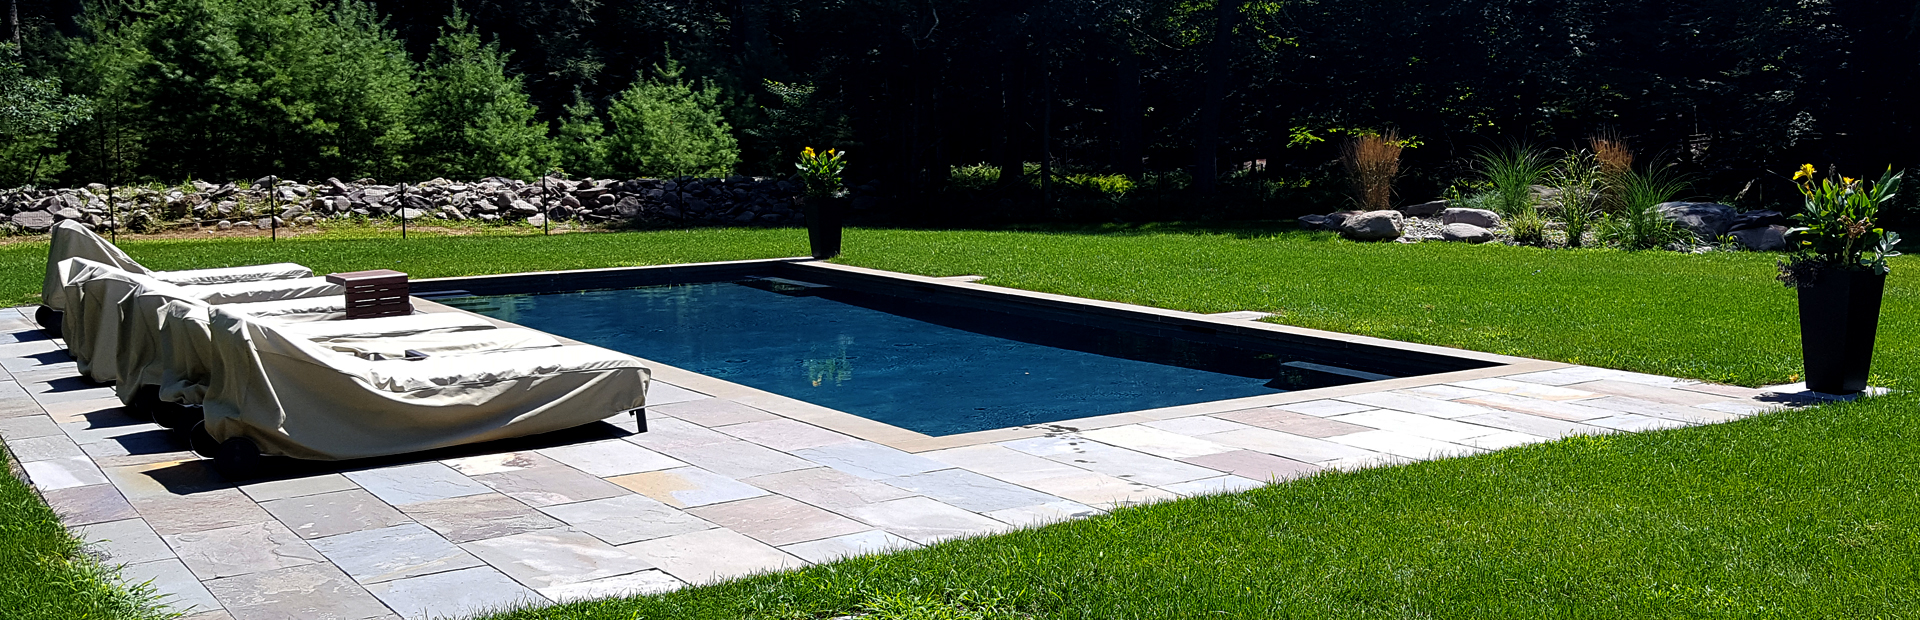 Conklin Pools Inc. | Gunite Swimming Pools, Gunite In Ground ...